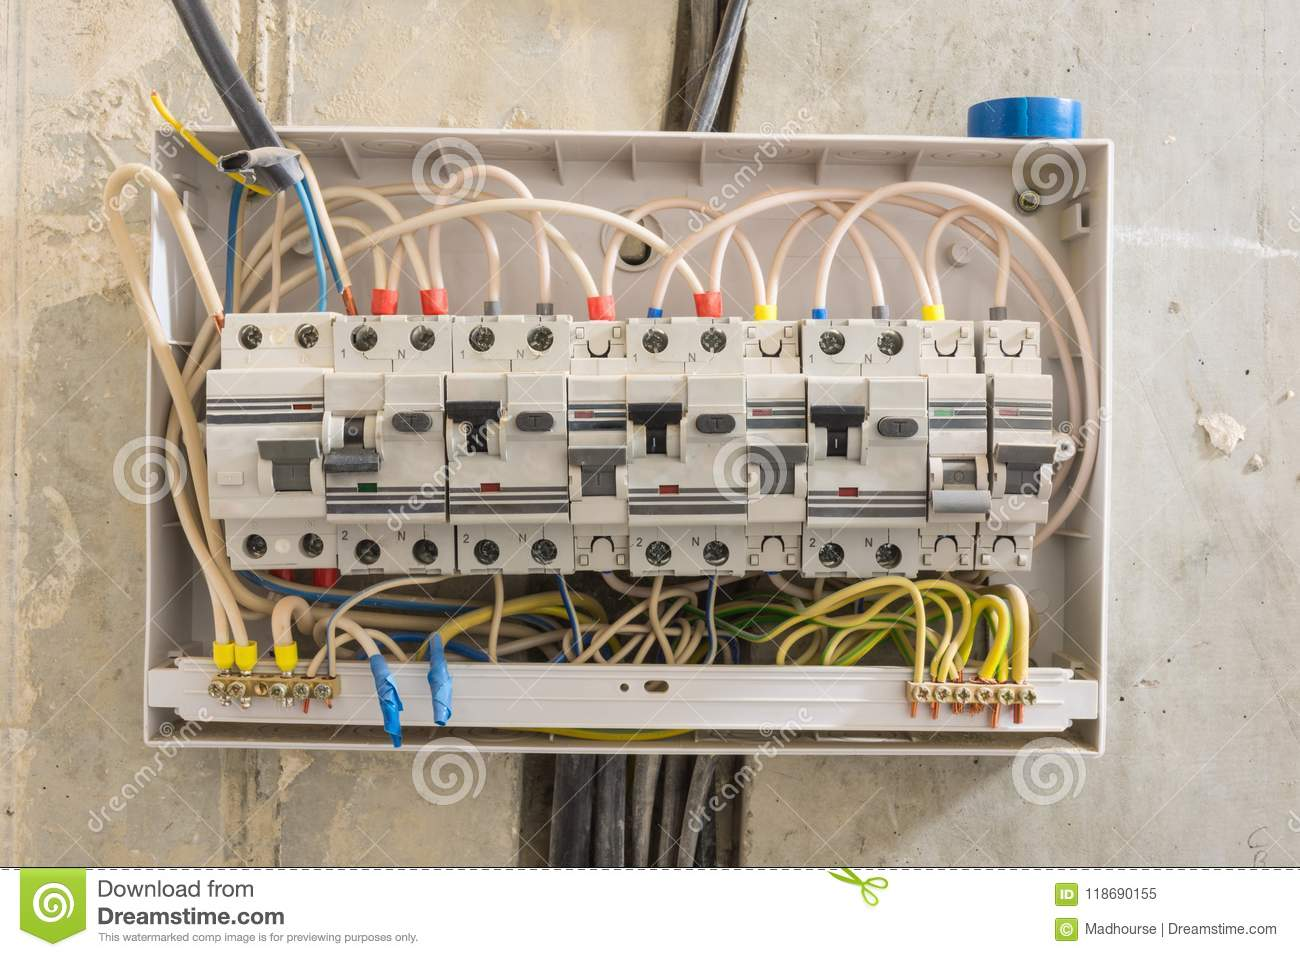 Apartment Phone Wiring Box Complete Diagrams Outdoor Telephone Junction In Differential Automatons And Circuit Rh Dreamstime Com